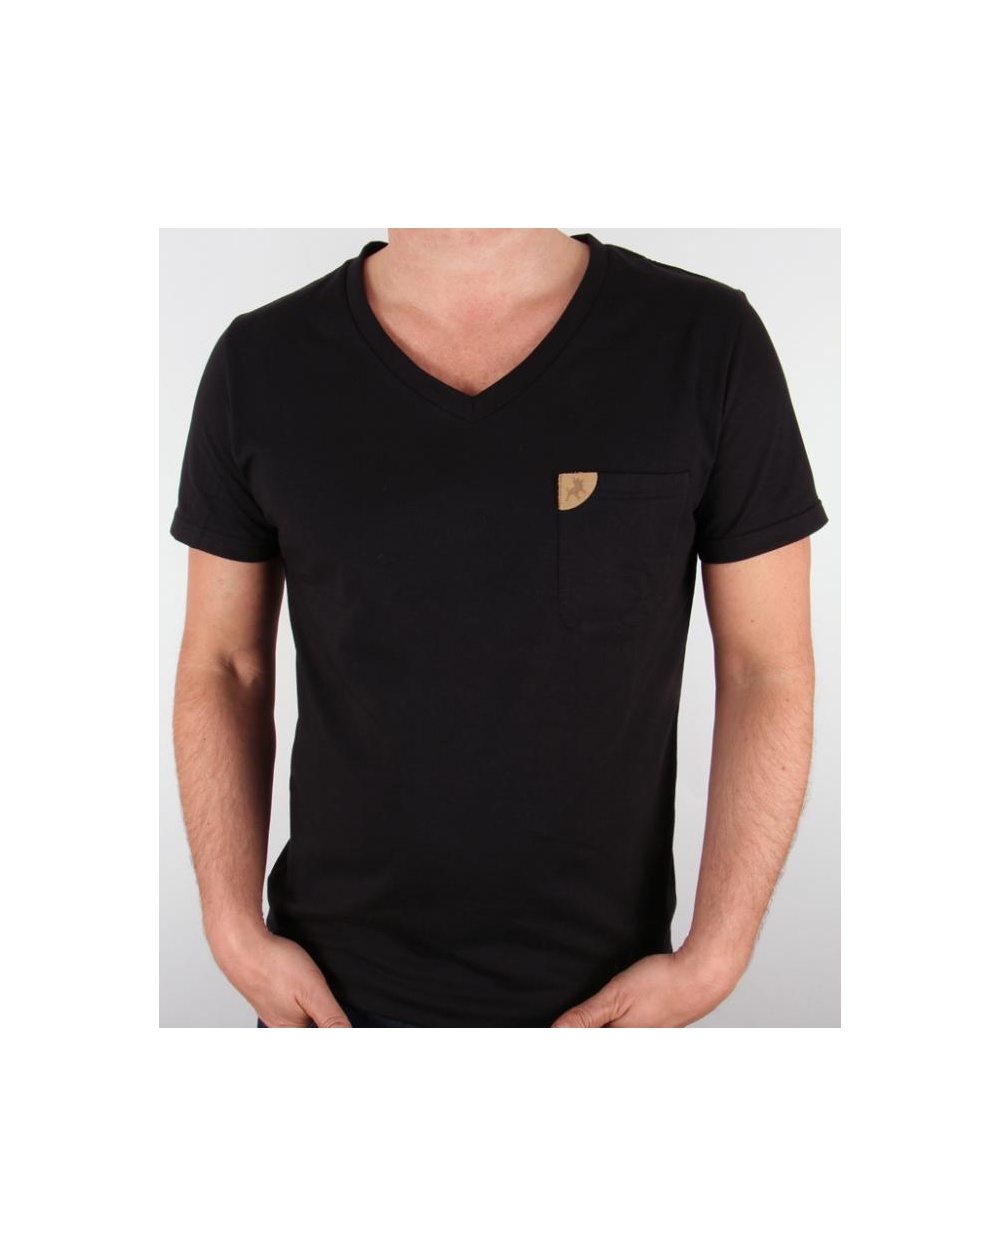 Lois v neck pocket t shirt black v neck tee lois V neck black t shirt